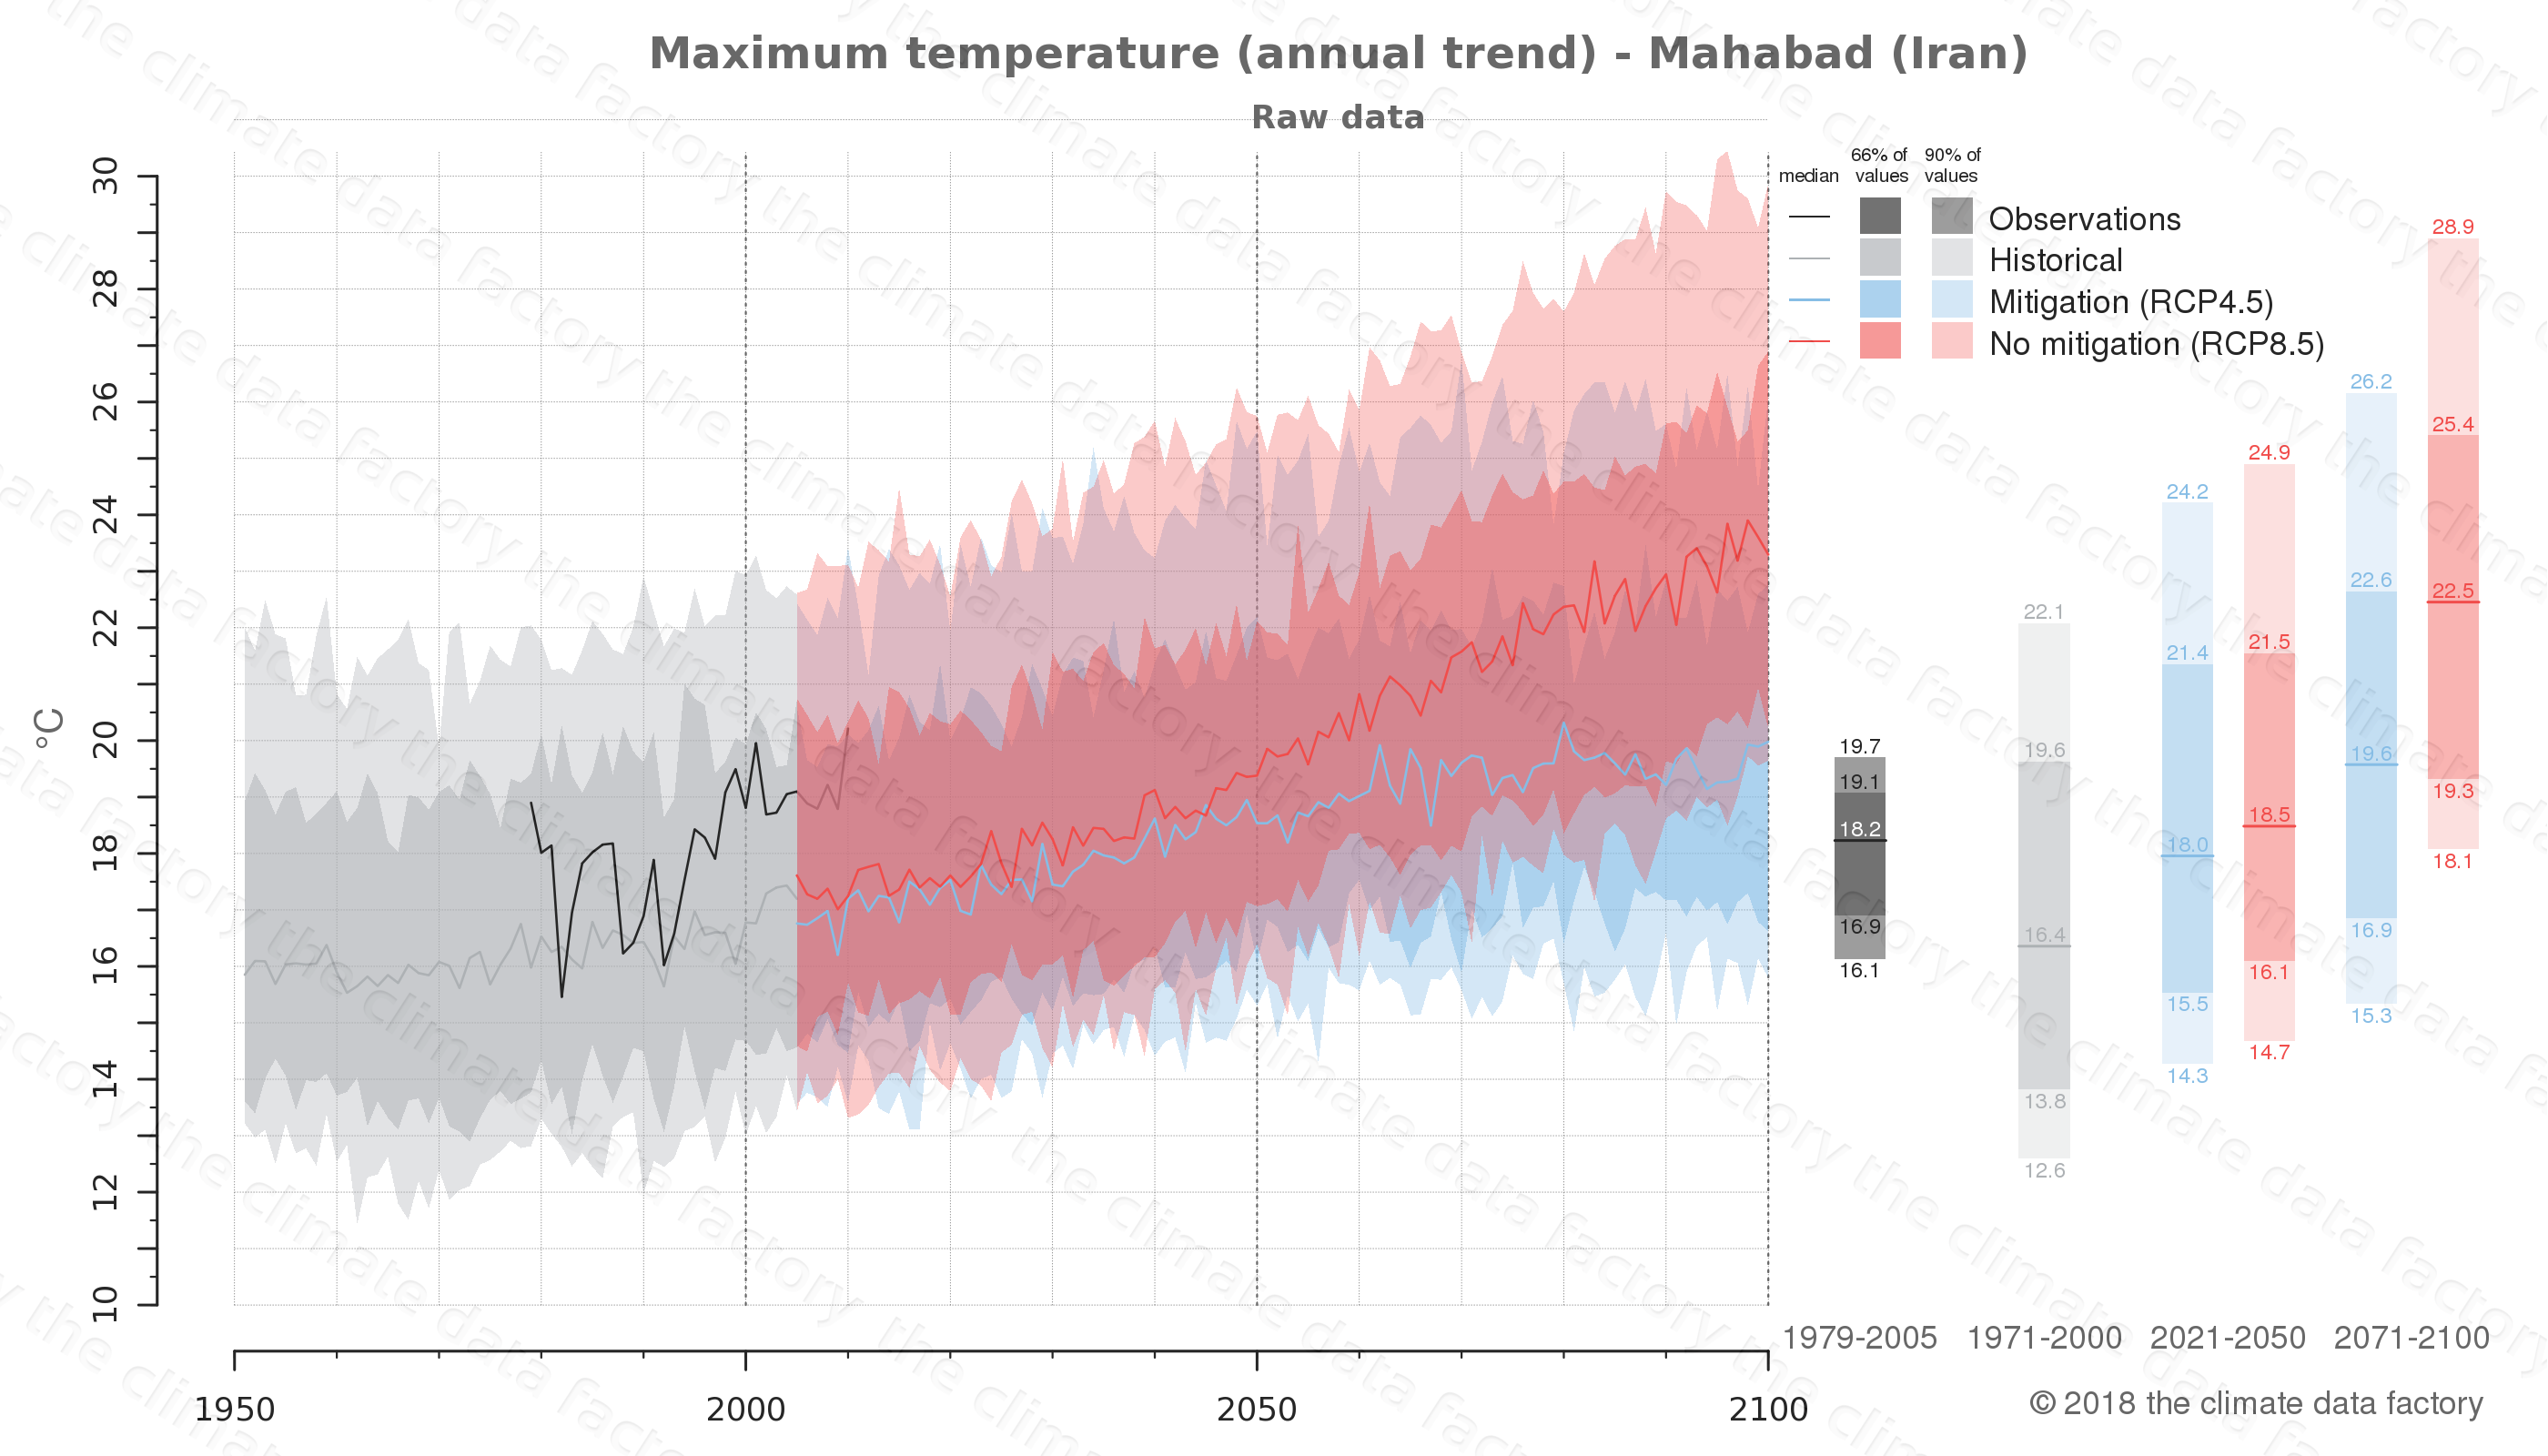 climate change data policy adaptation climate graph city data maximum-temperature mahabad iran